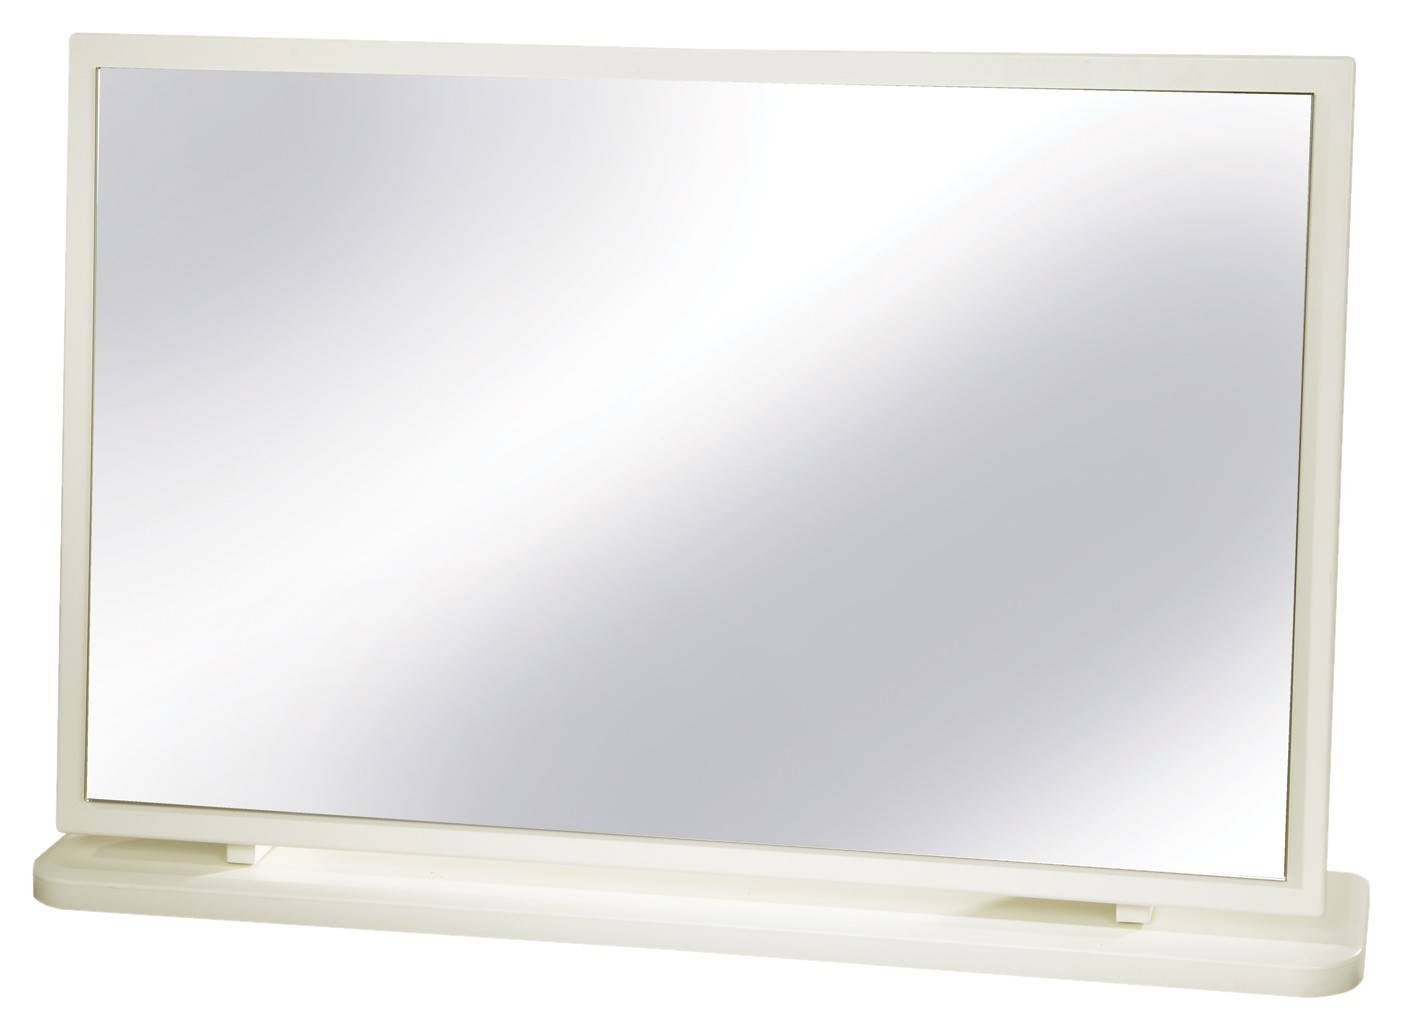 Avalon Cream Large Dressing Table Mirror – Default Store View Throughout Large Cream Mirrors (View 10 of 15)